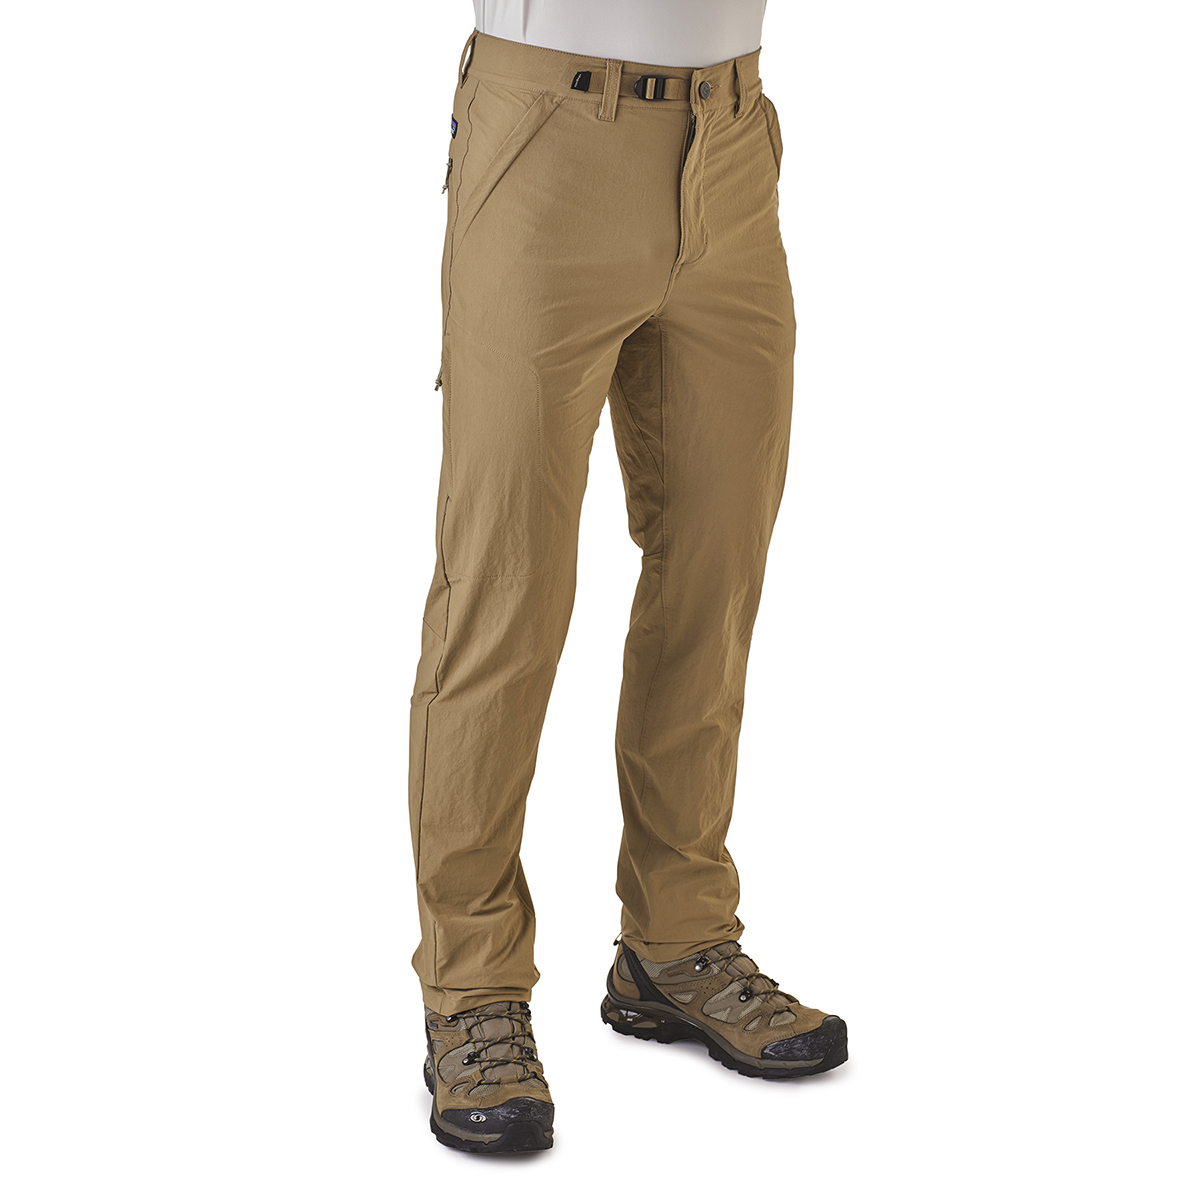 Patagonia Men's Stonycroft Pants - Regular 55585 S8